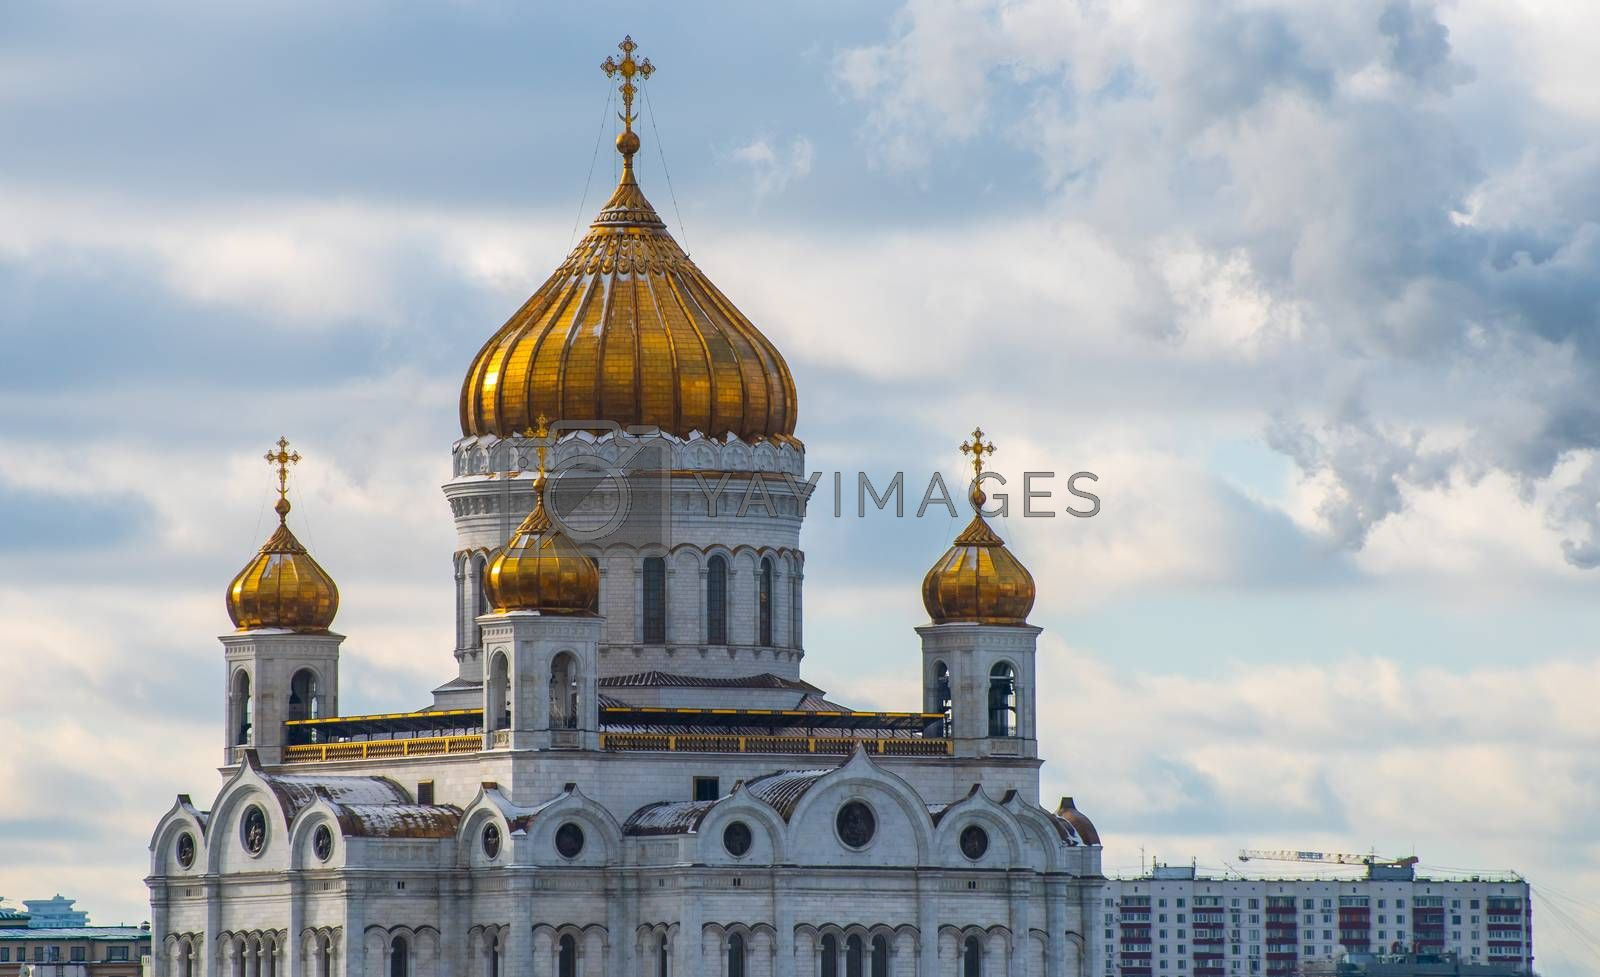 February 5, 2020, Moscow, Russia Cathedral of Christ the Savior in Moscow on a clear frosty day